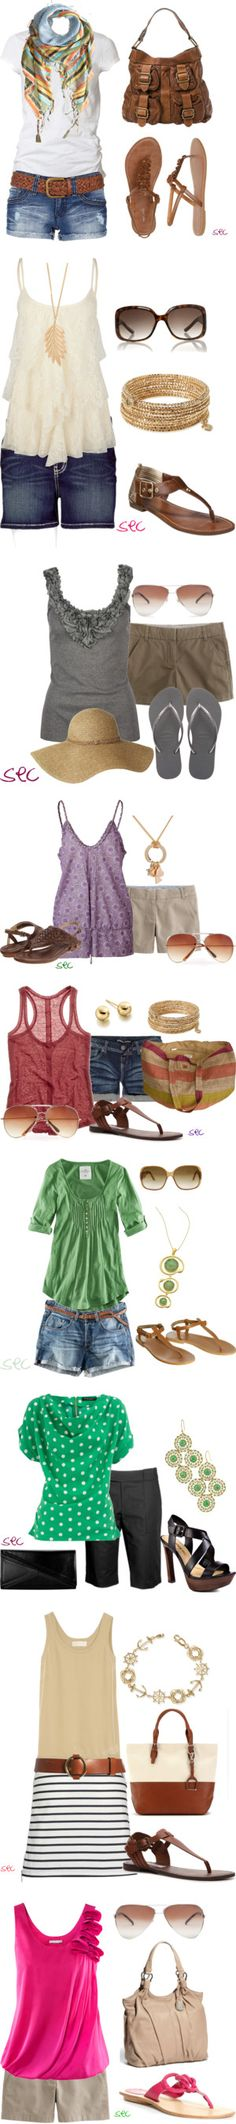 cute outfits for summer!